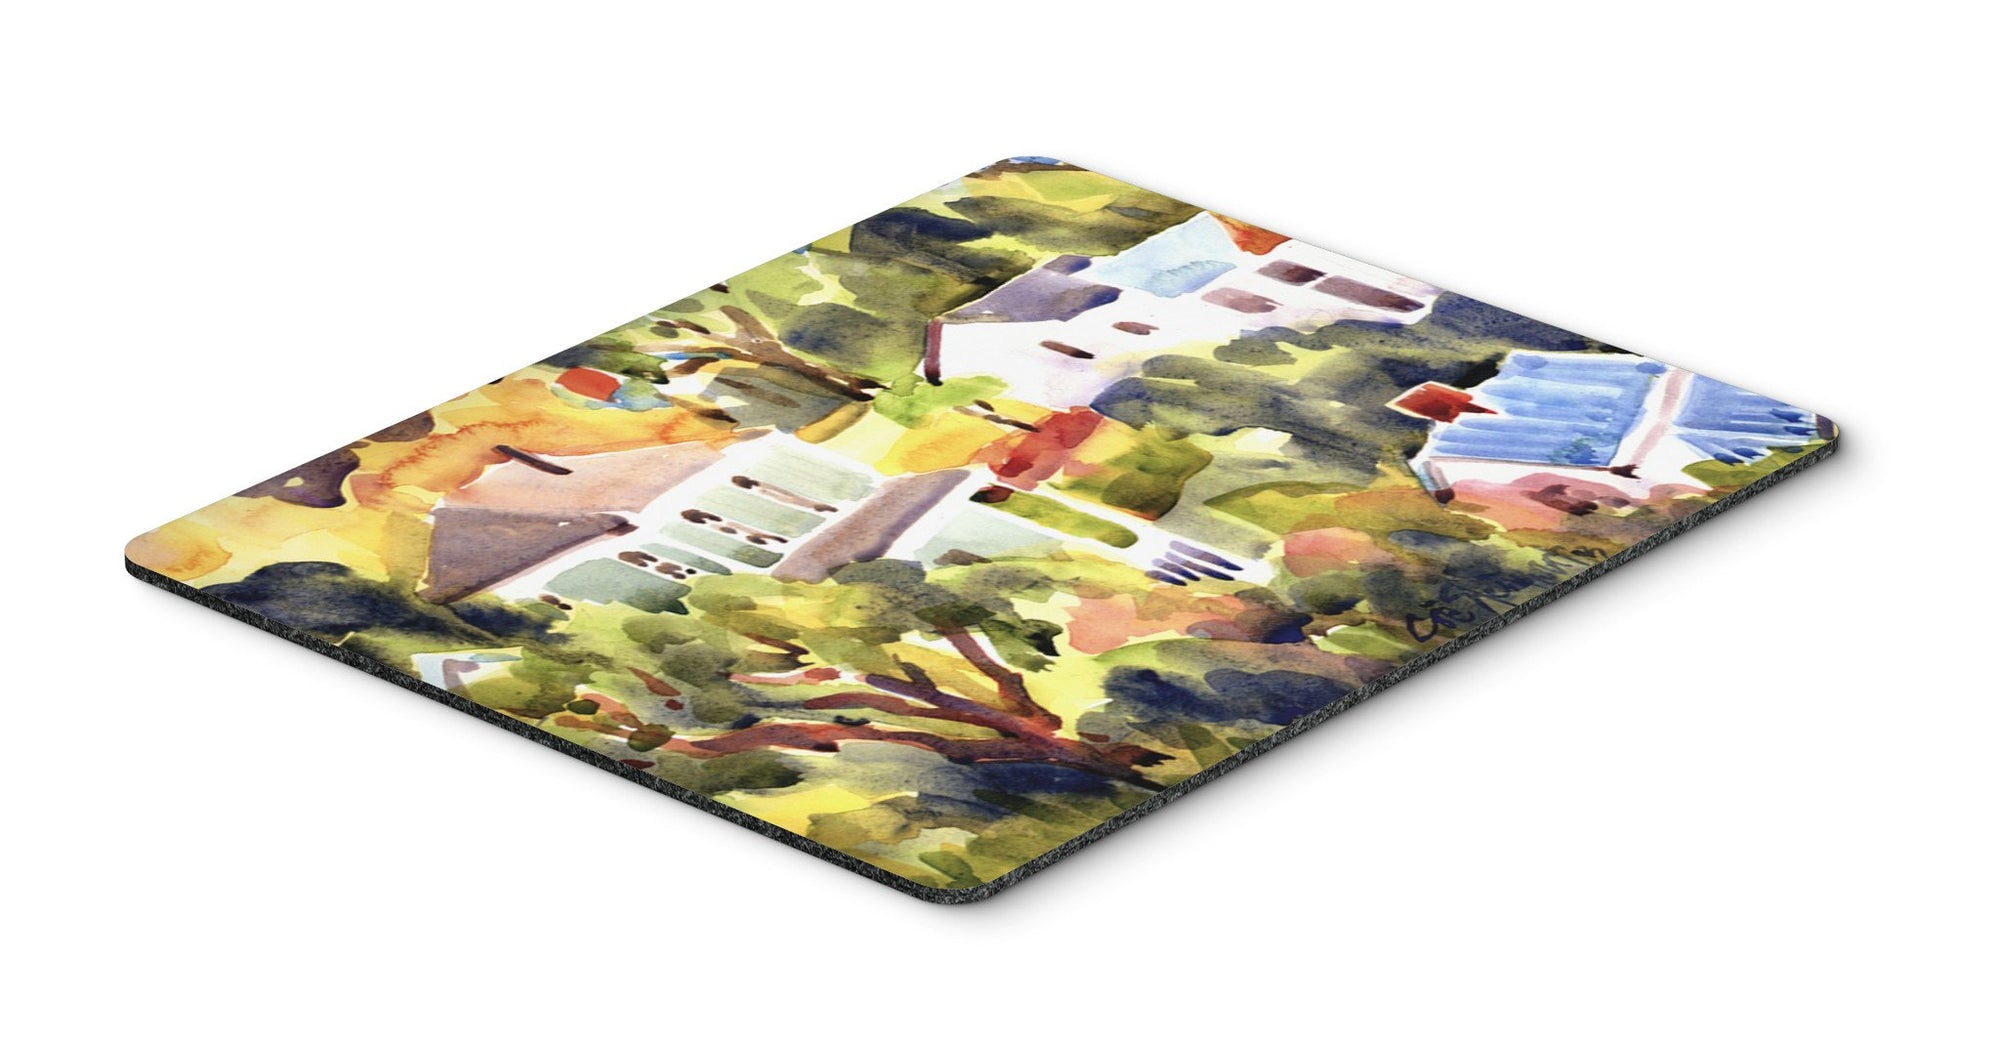 Buy this Houses Mouse pad, hot pad, or trivet